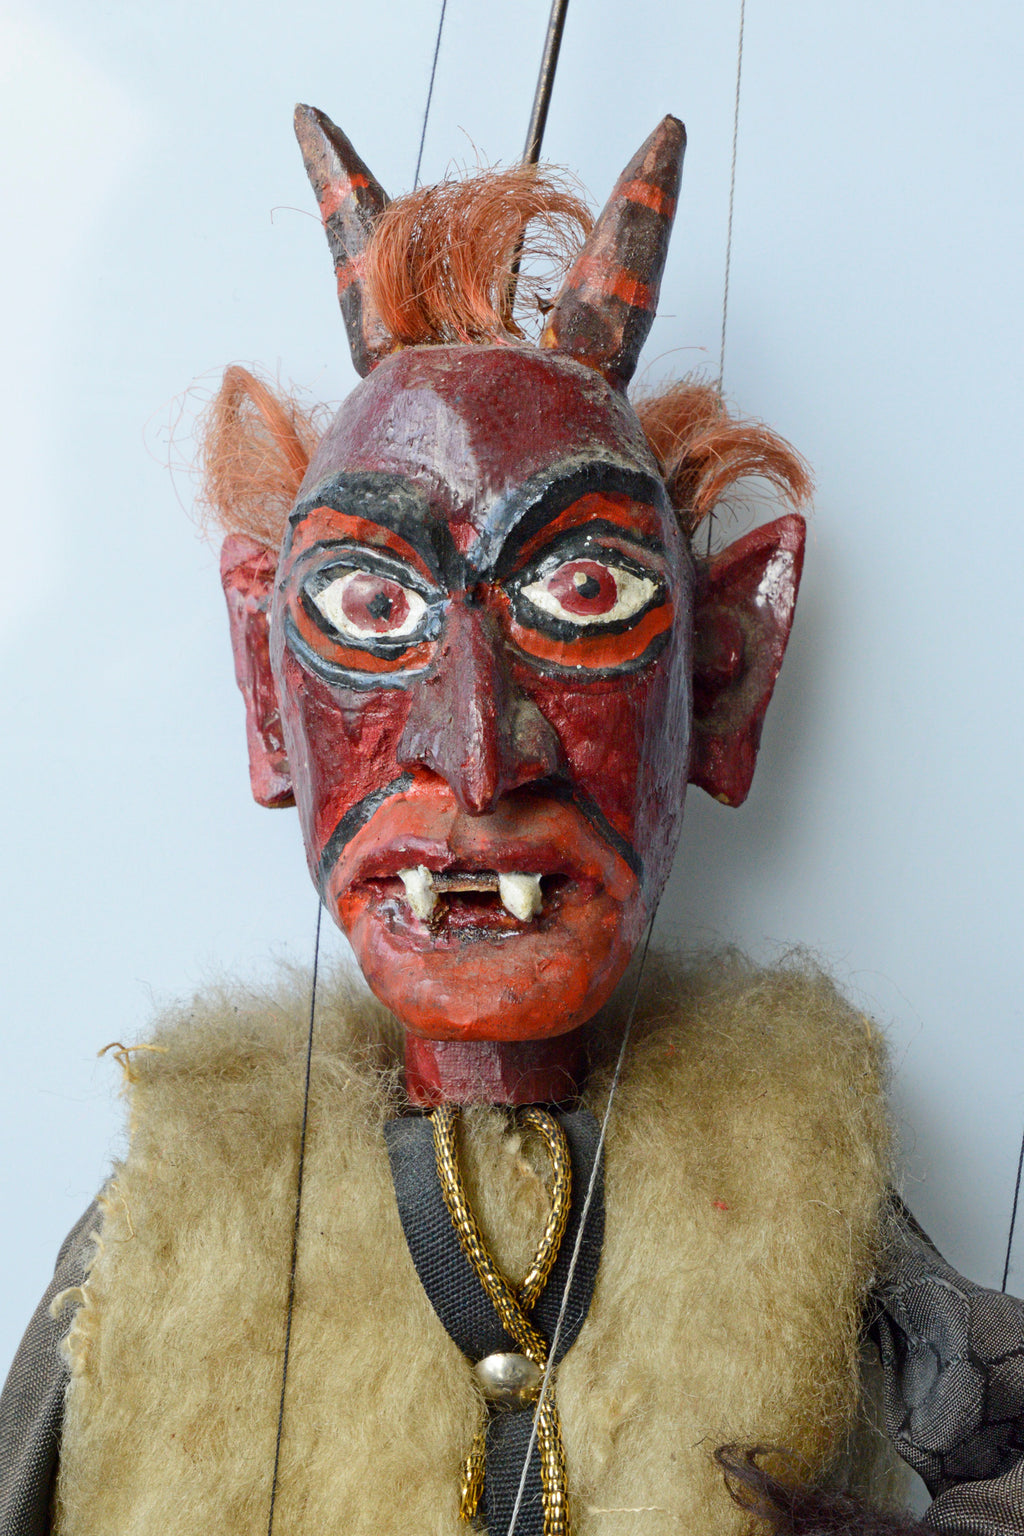 devil, puppet, loutka, marionette, krampus, antique, carved, wood